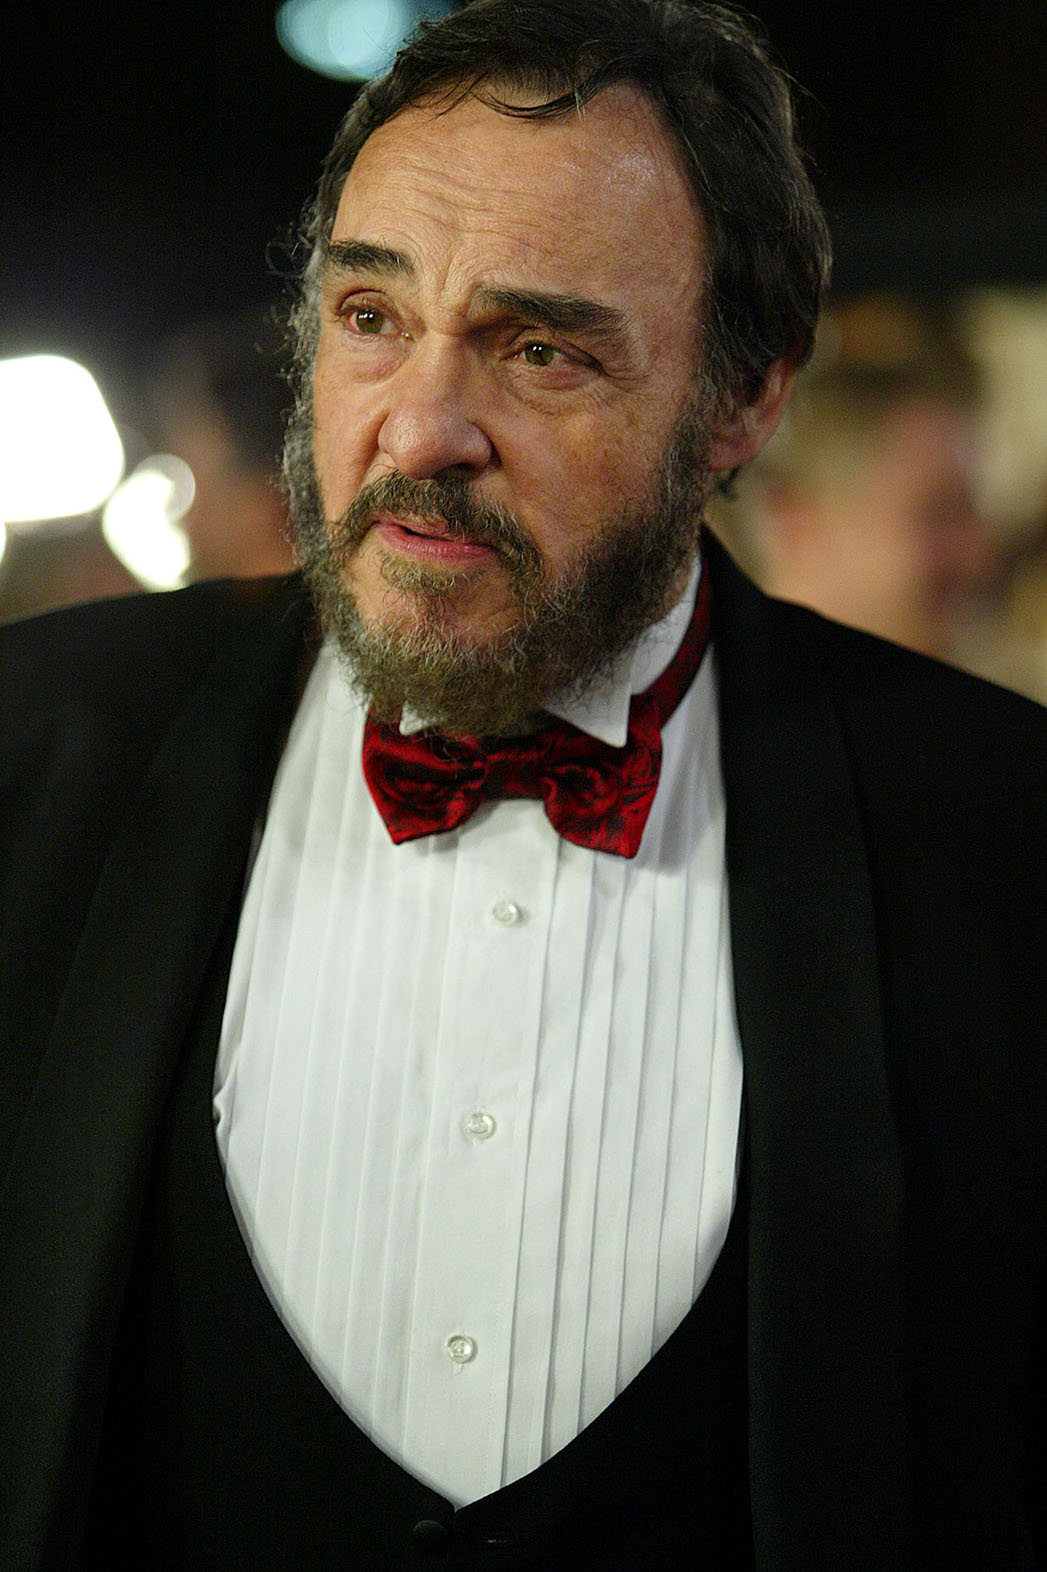 John Rhys-Davies (born 1944) nude photos 2019